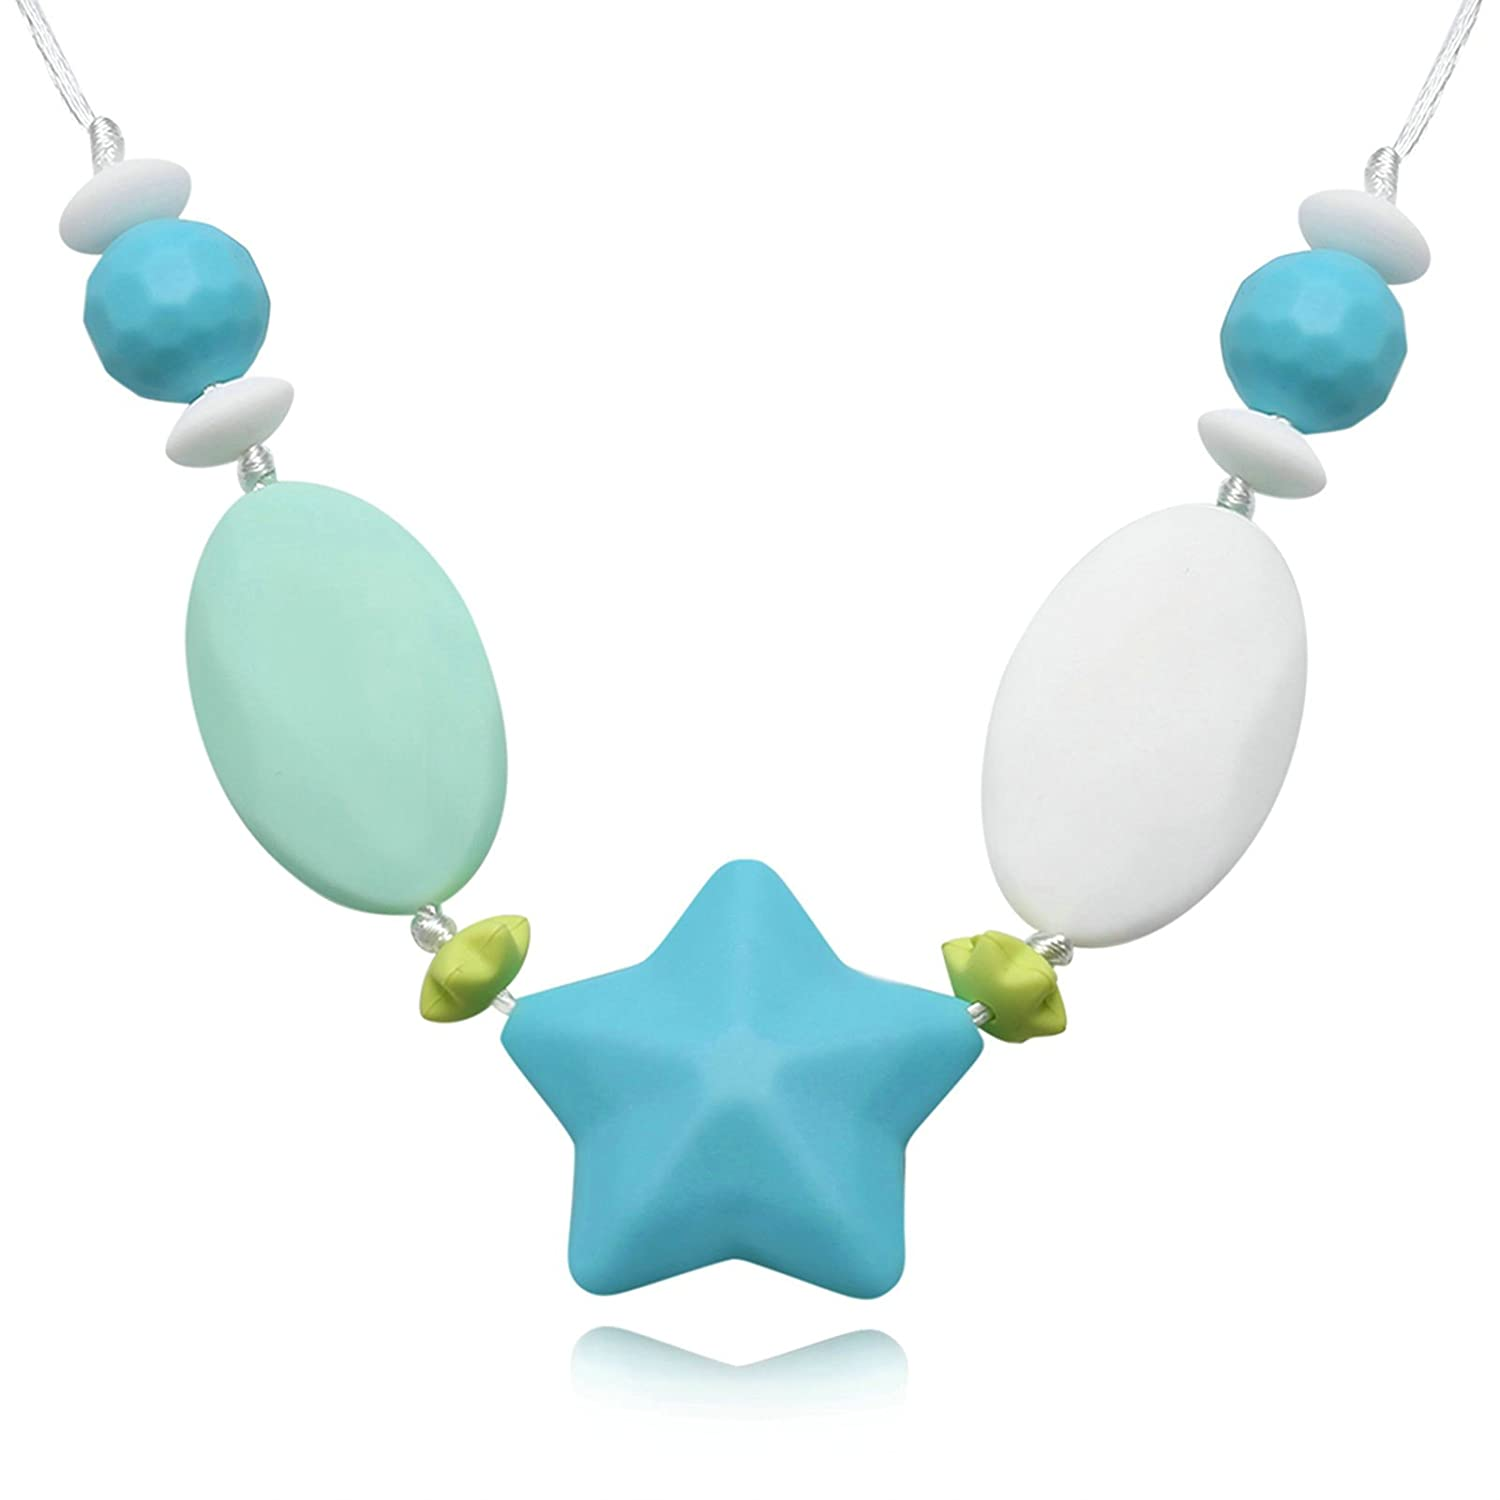 Aooaz Baby Teething Necklace Chew Necklace For Mother Mom Chain Silicone Star Design Green Chain 80Cm